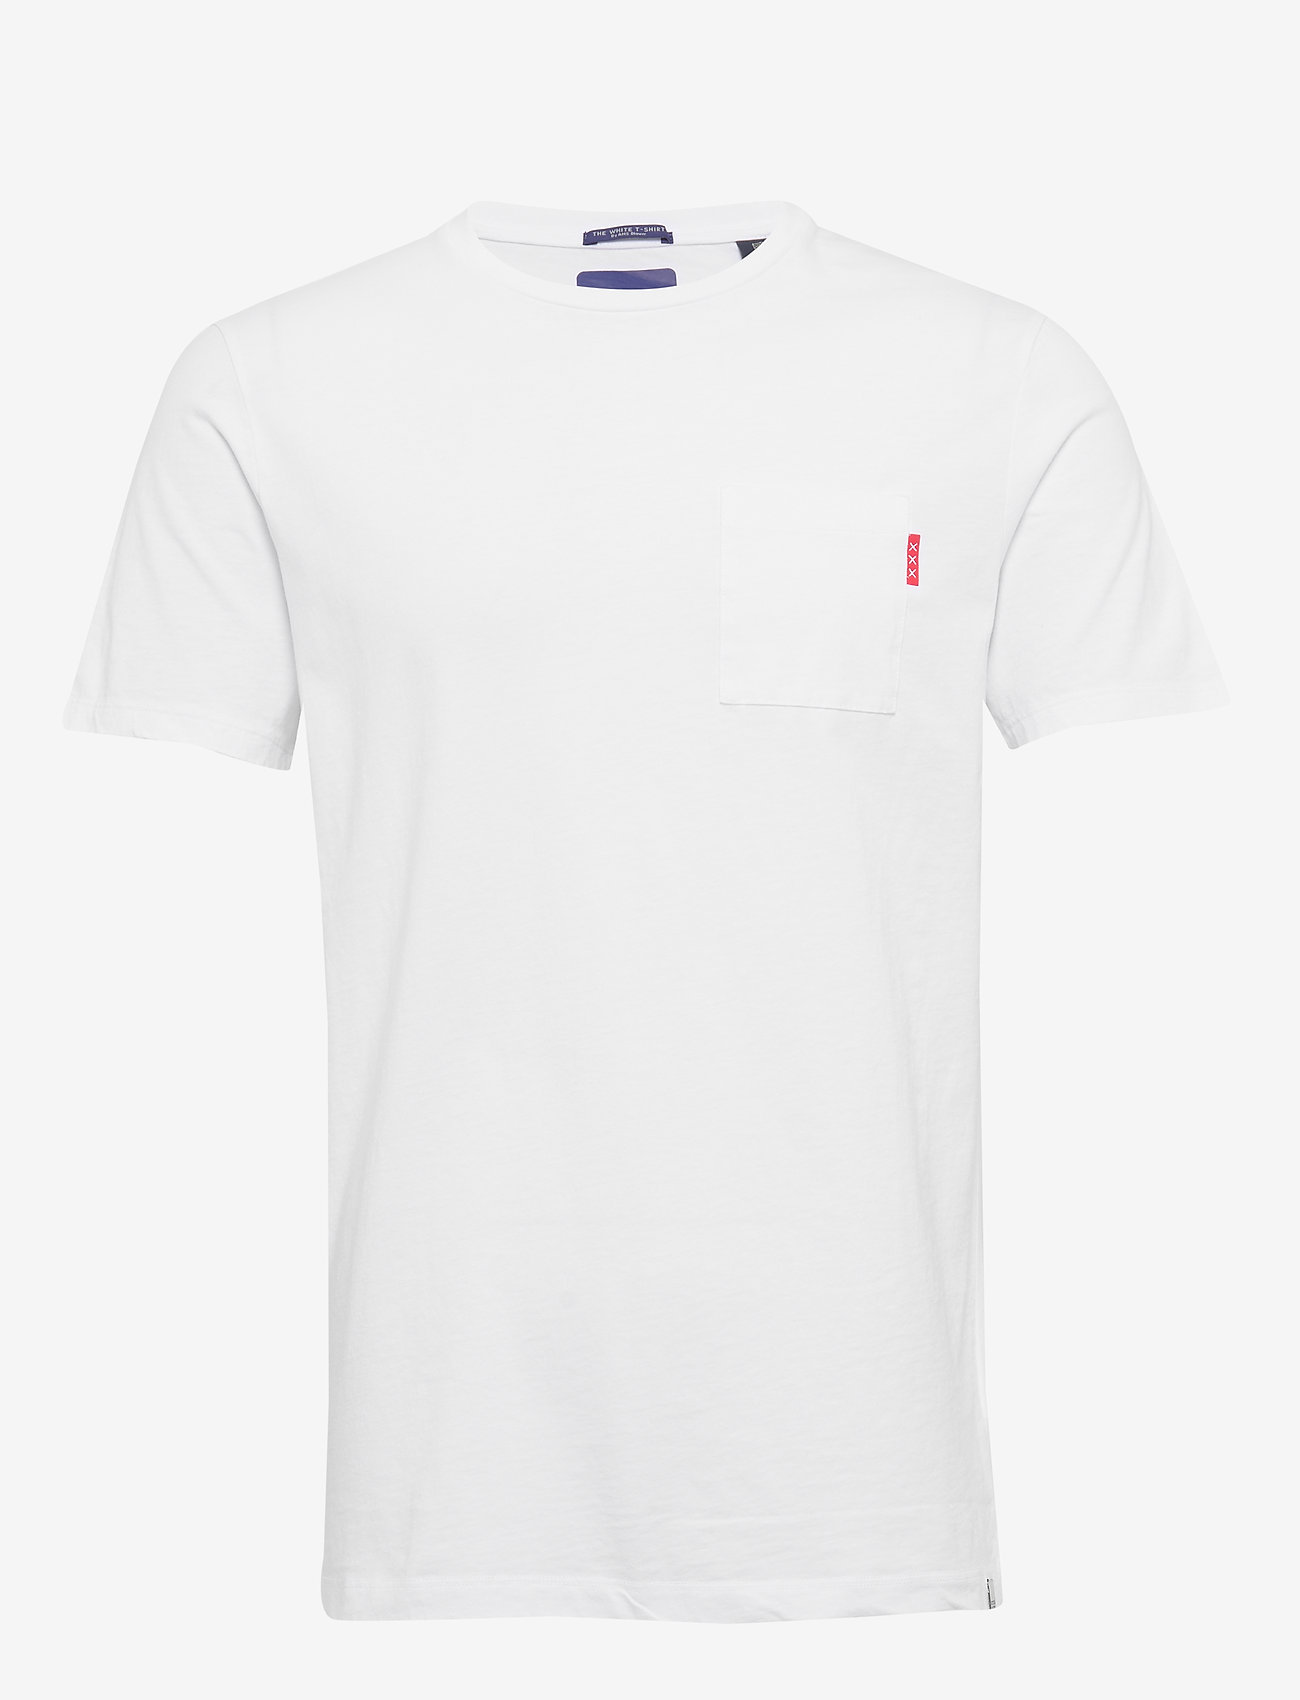 Scotch & Soda - Ams Blauw classic pocket tee - t-shirts basiques - white - 0